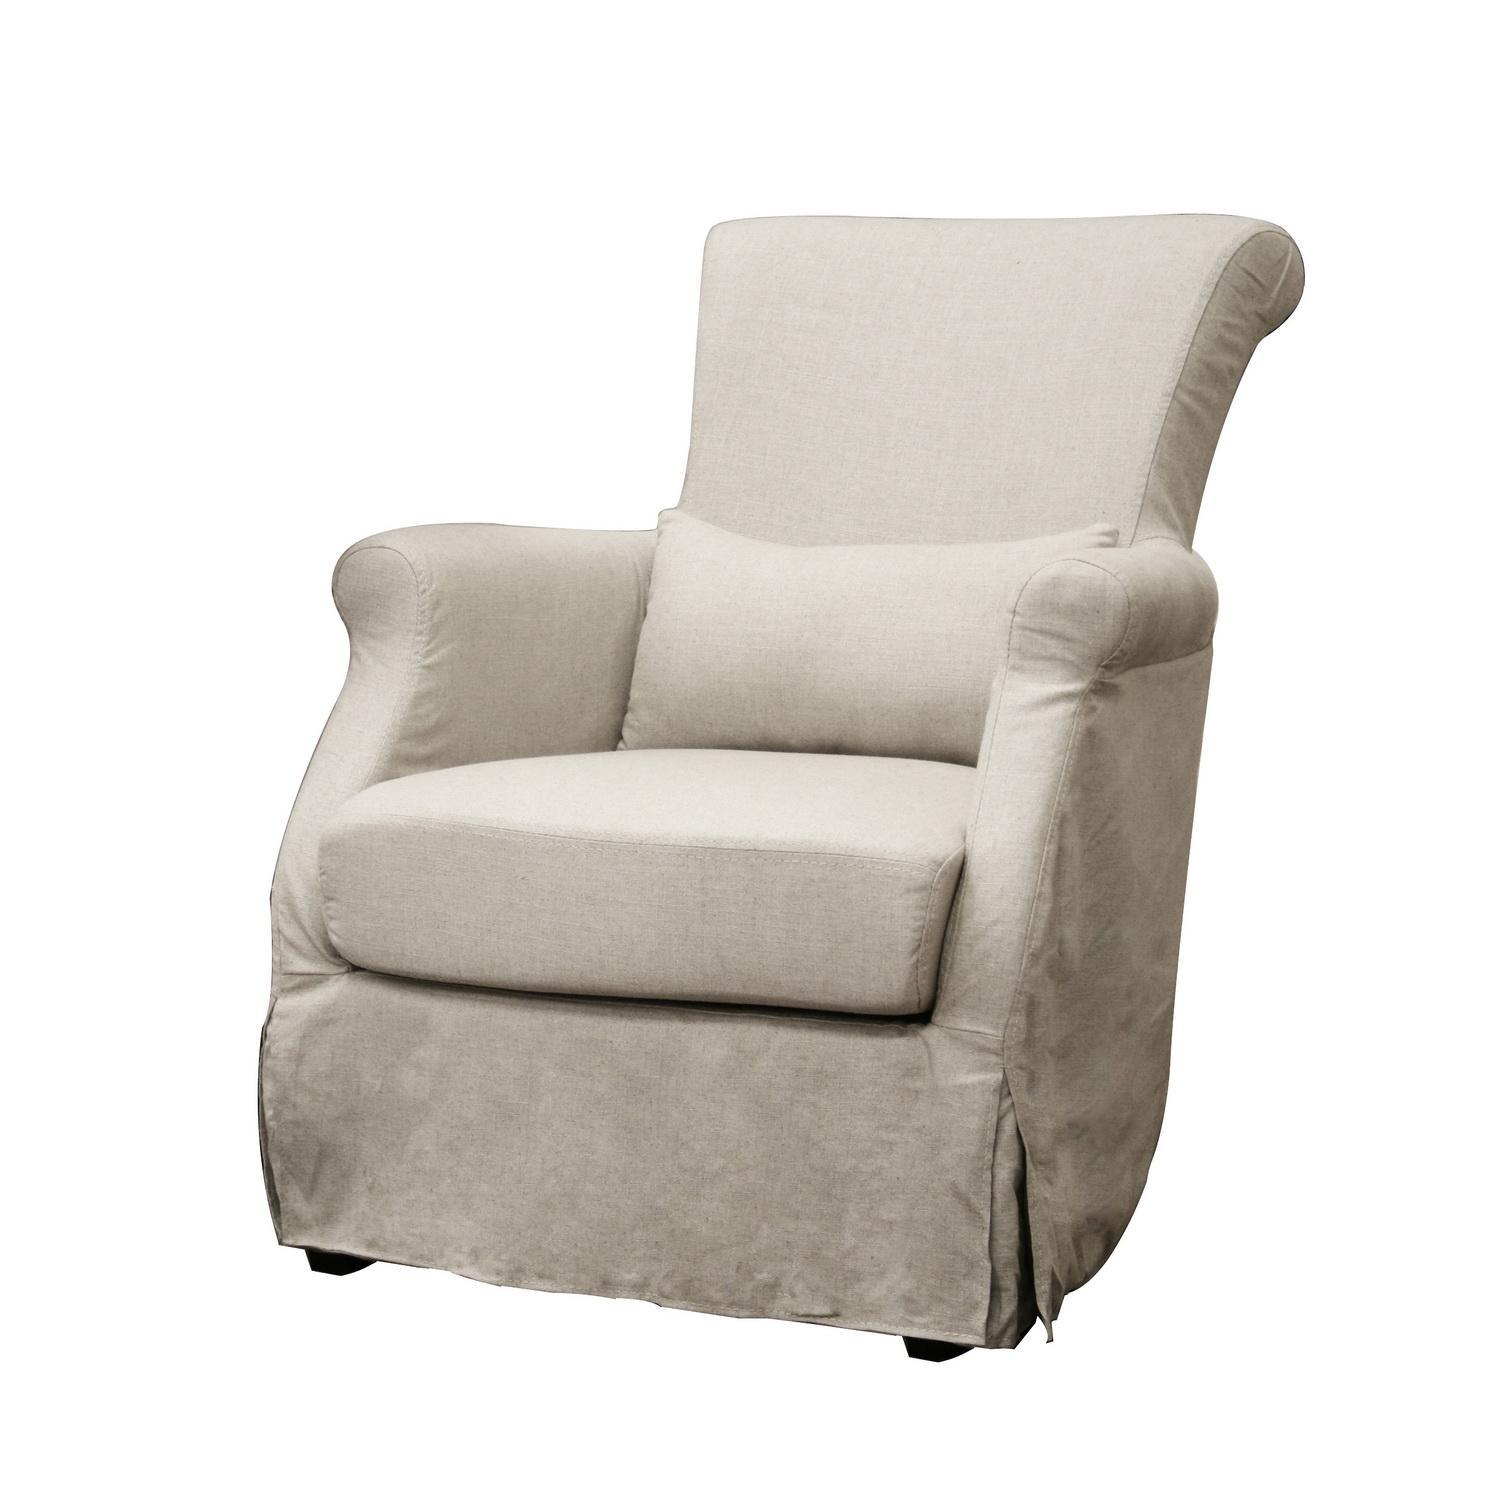 Carradine Beige Linen Slipcover Modern Club Chair Free